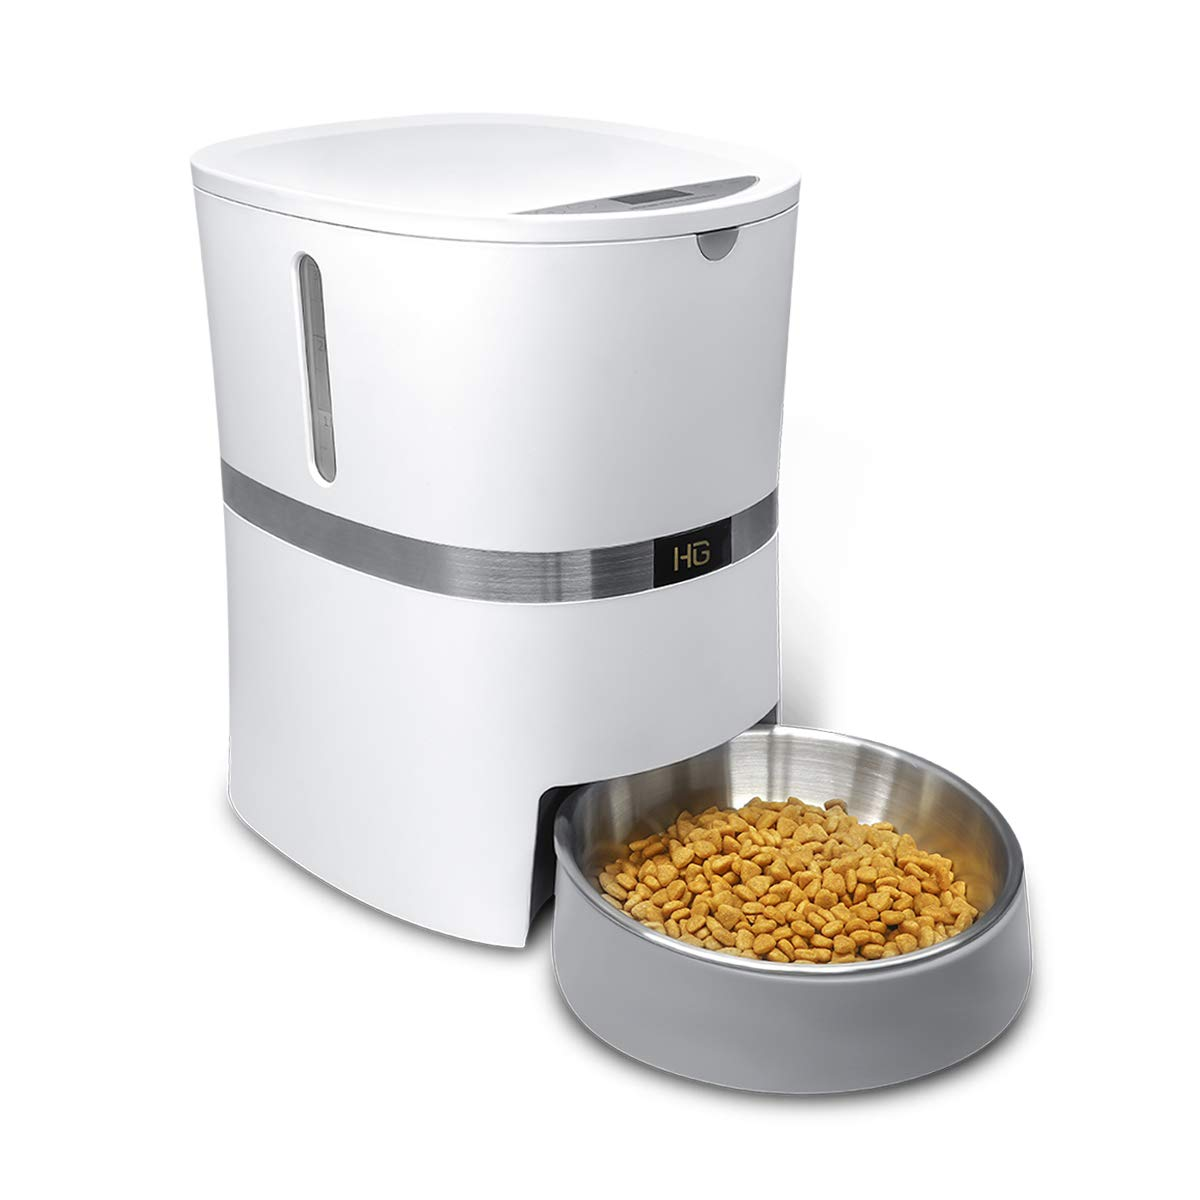 HoneyGuaridan Automatic Pet Feeder, Dogs, Cats, Rabbit & Small Animals Food Dispenser with Stainless Steel Pet Food Bowl… – The Cat Site